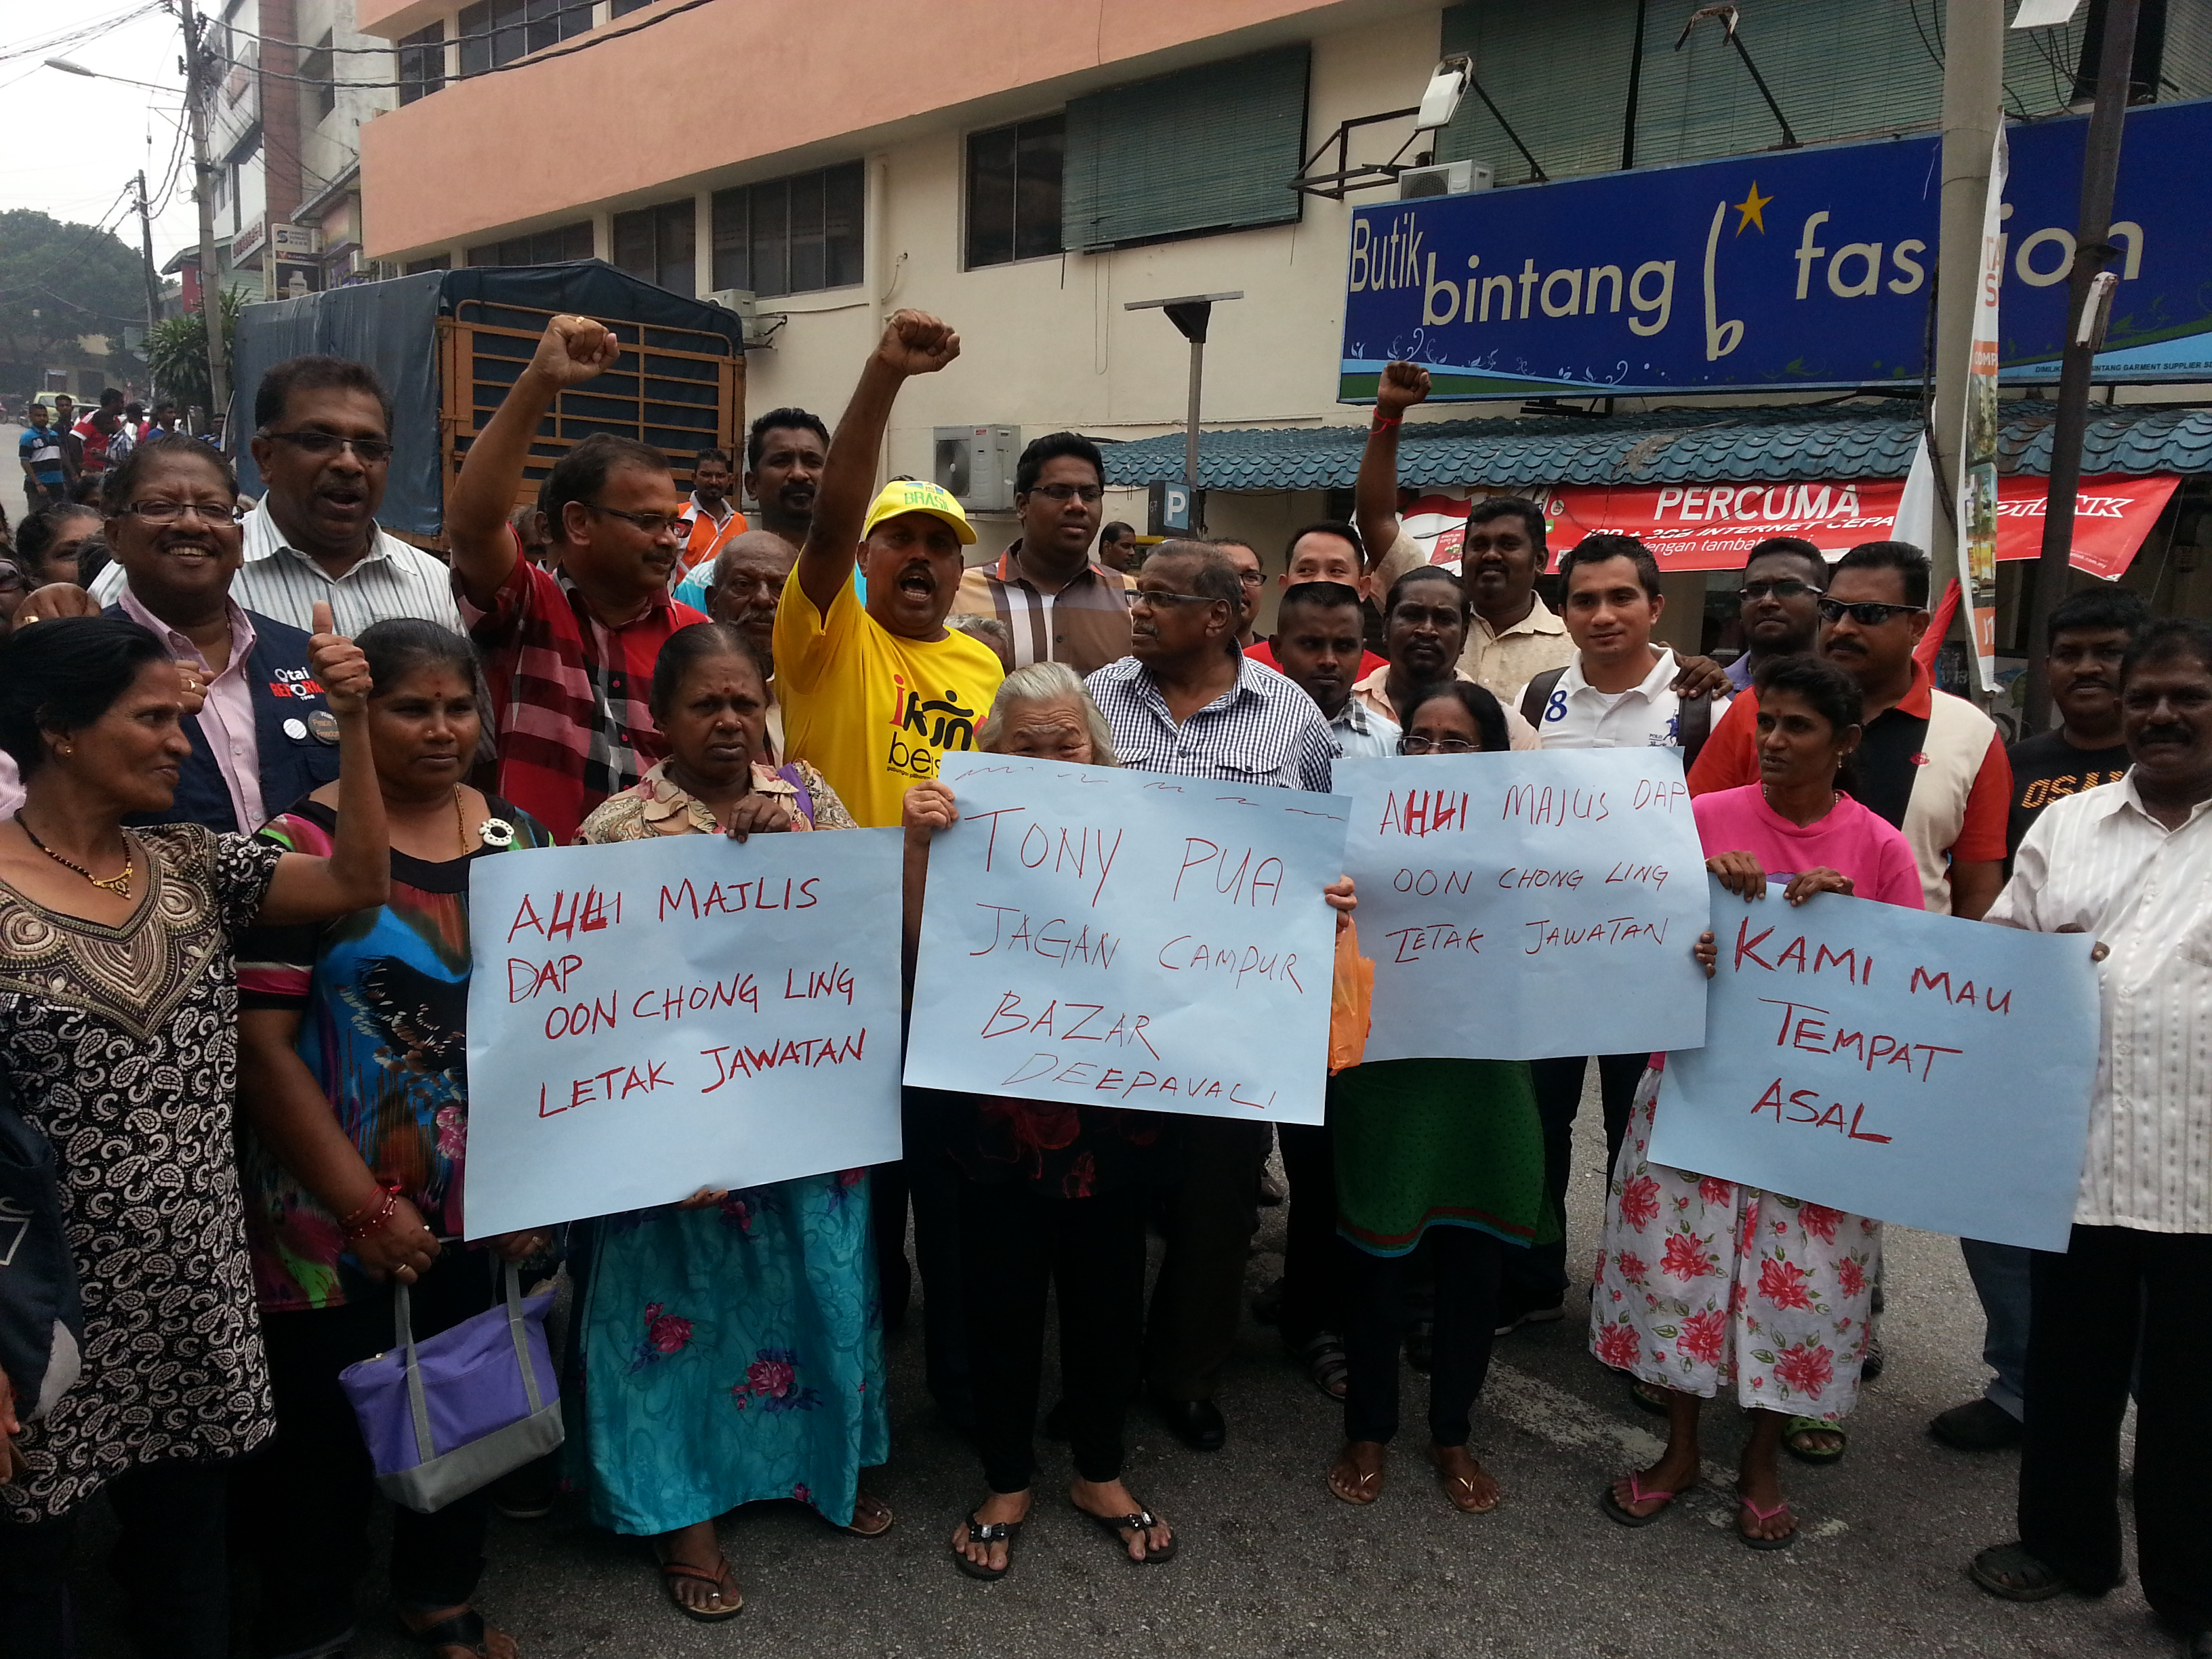 Some 50 traders and PKR members turned up to show their support for Samynathan who is also the Sungai Way Small Businesses Association chairman